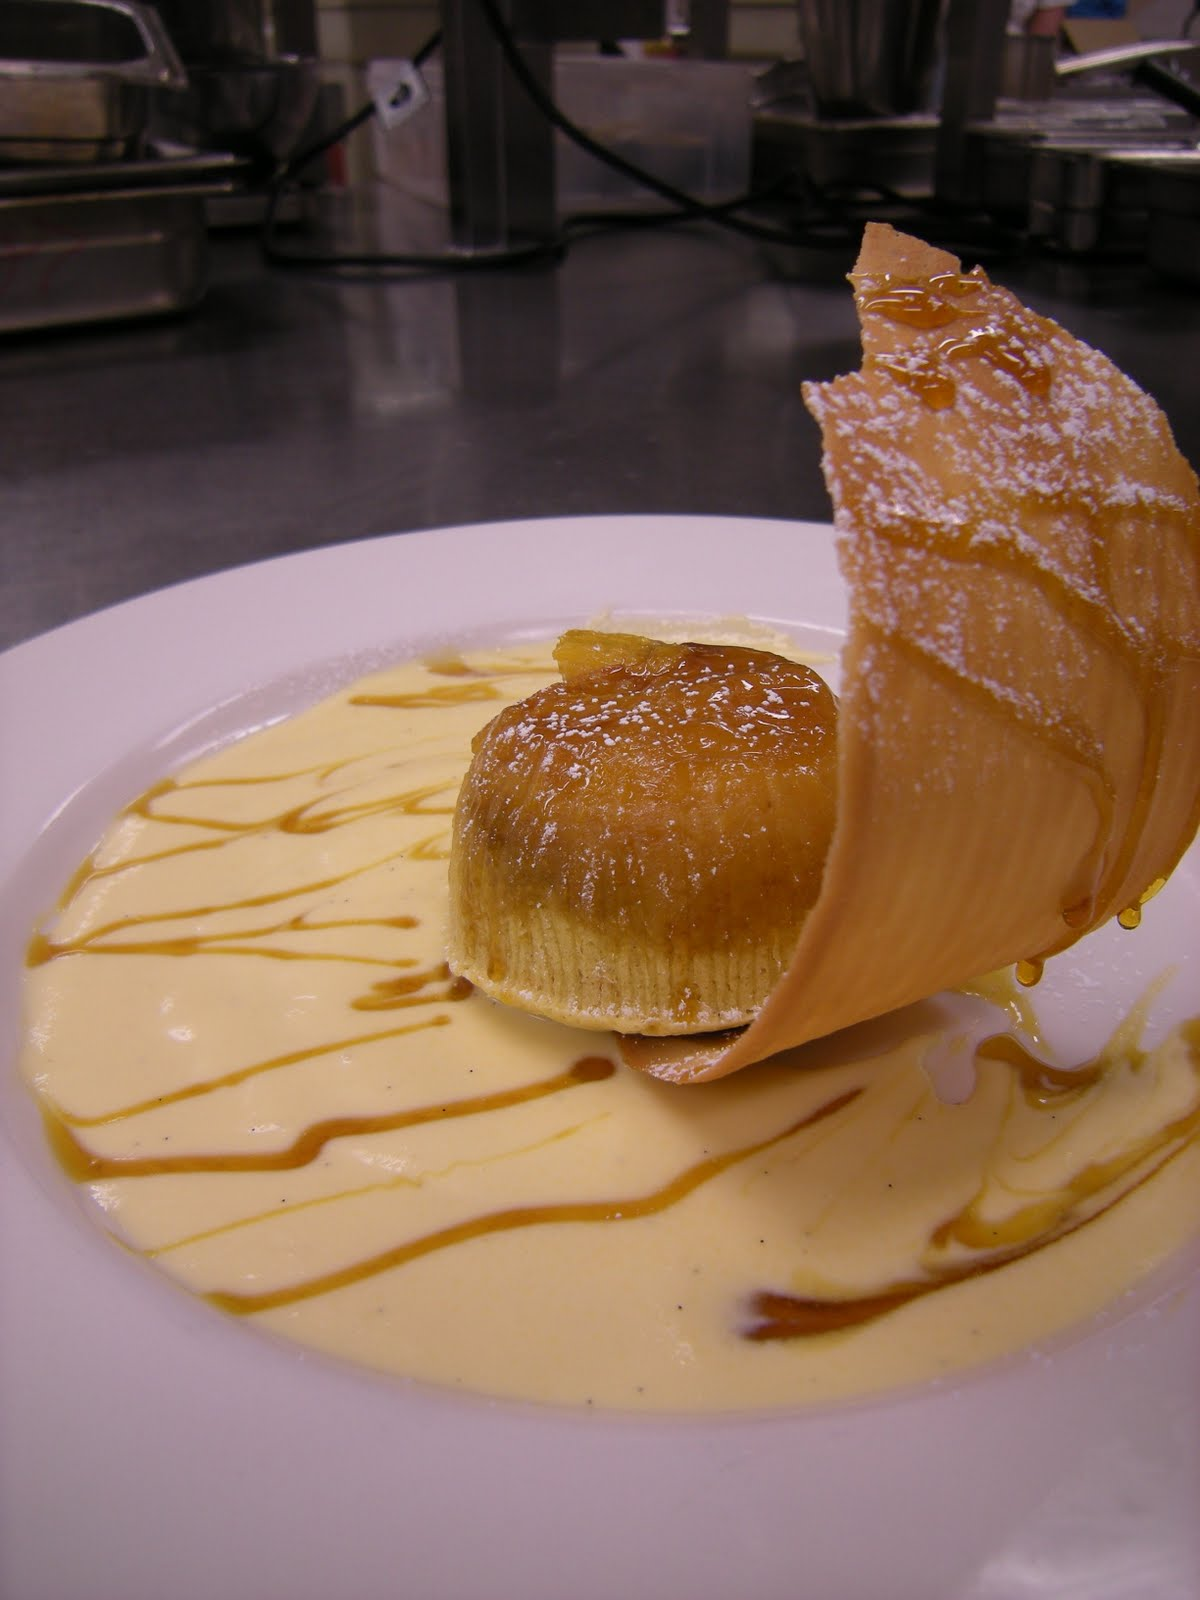 ... Orange and almond sponge pudding with Crème Anglaise and Tulip Paste